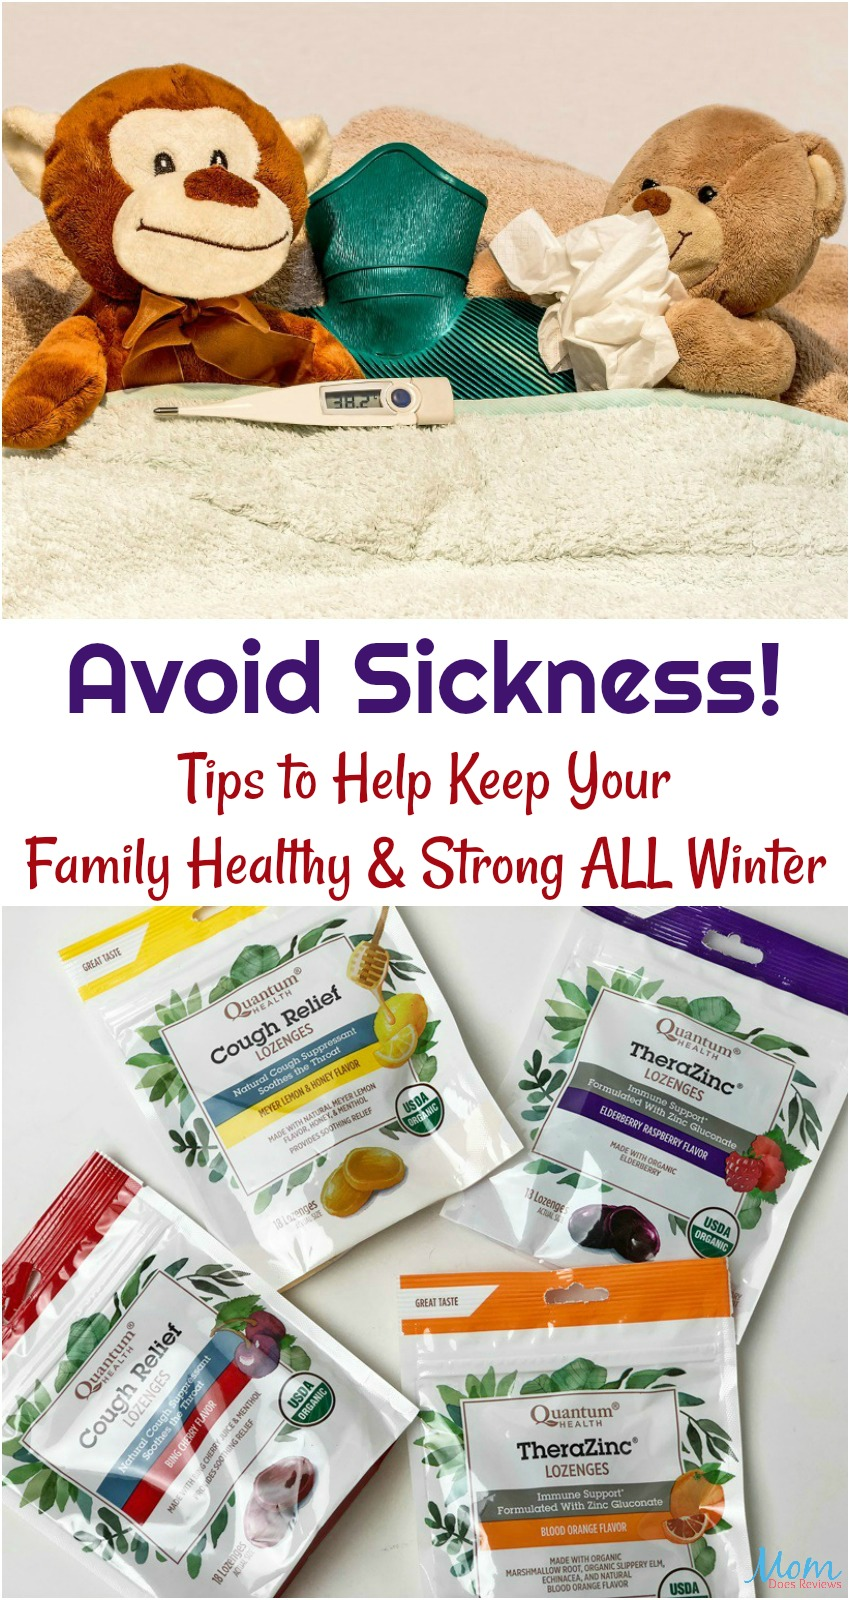 Avoid Sickness with Tips to Help Keep Your Family Healthy & Strong ALL Winter banner